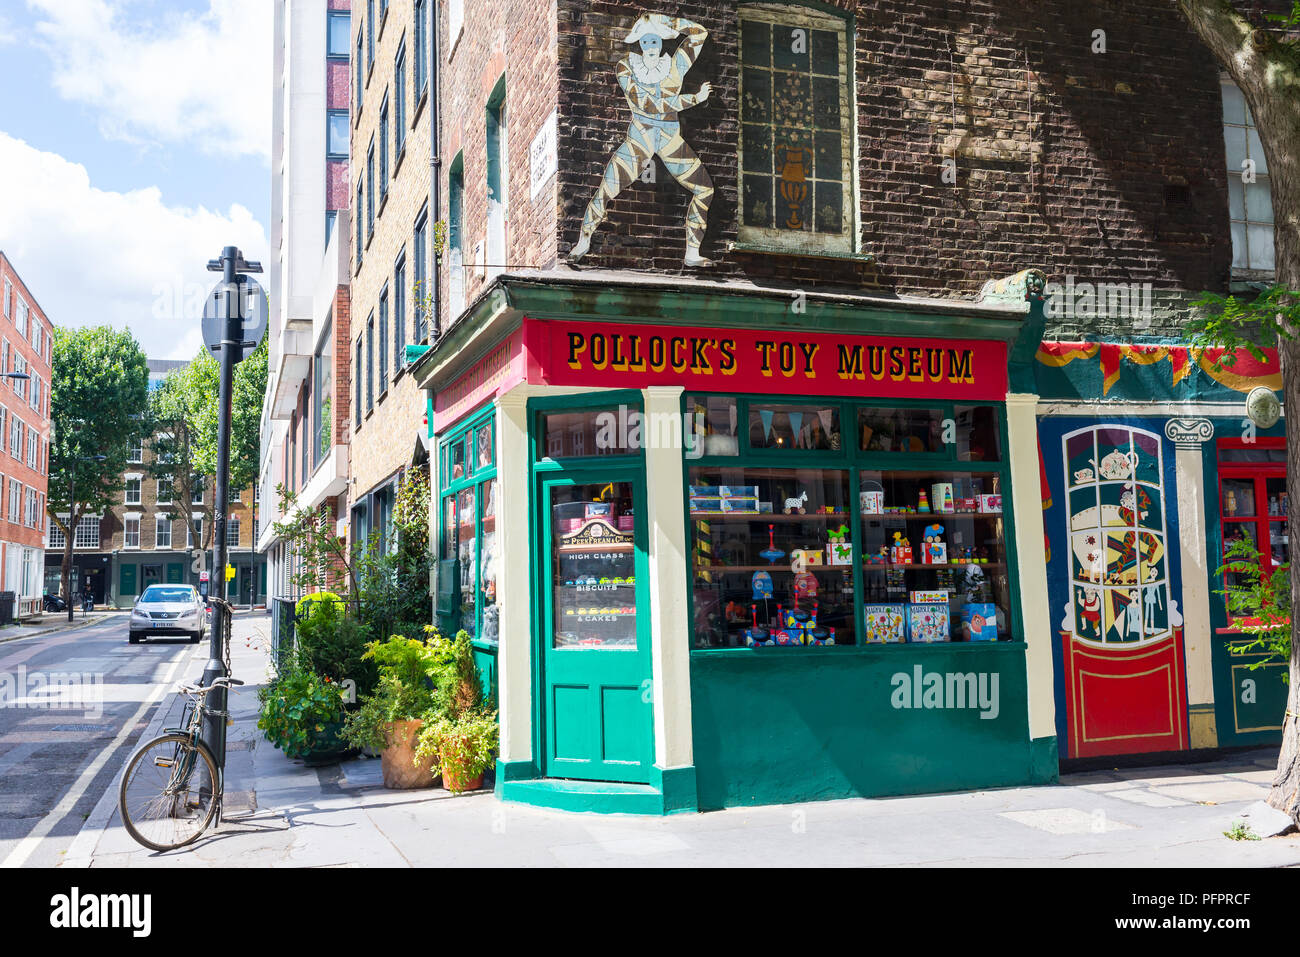 Pollock's Toy Museum, a museum and small toy shop housed in two atmospheric historic unrestored Georgian townhouses buildings in London's Fitzrovia UK - Stock Image